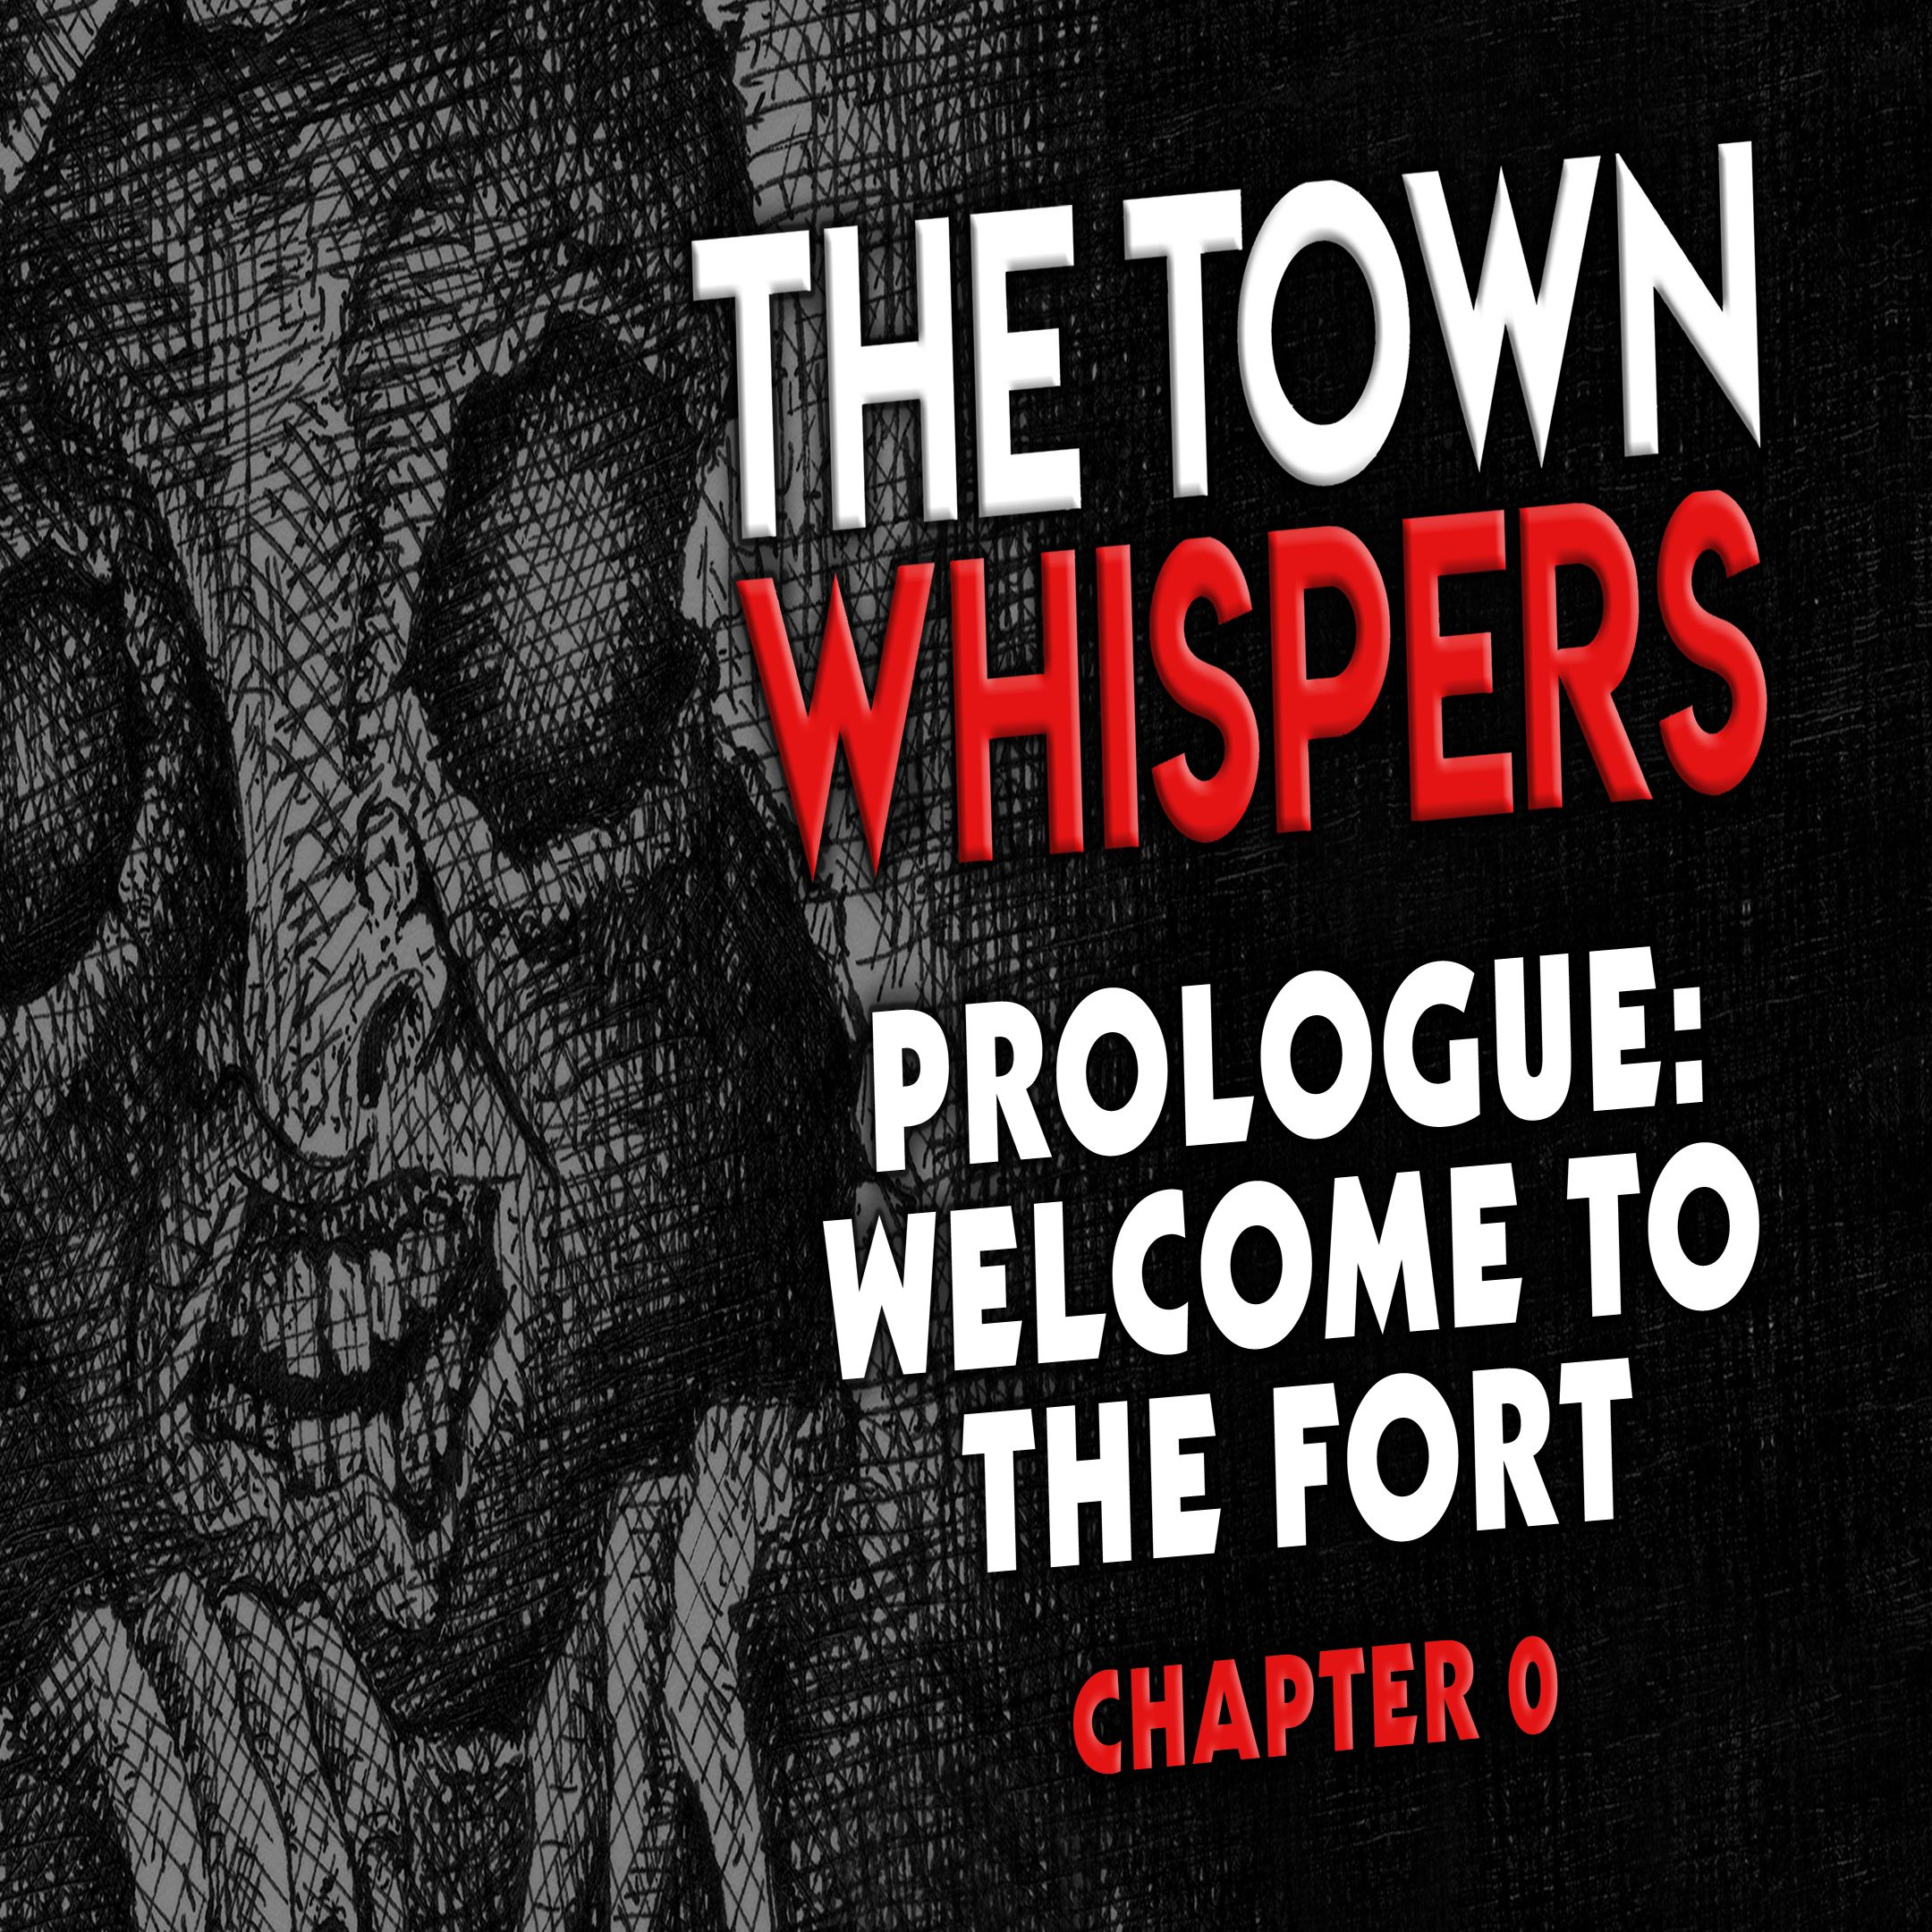 Chapter 0: Prologue - Welcome To The Fort